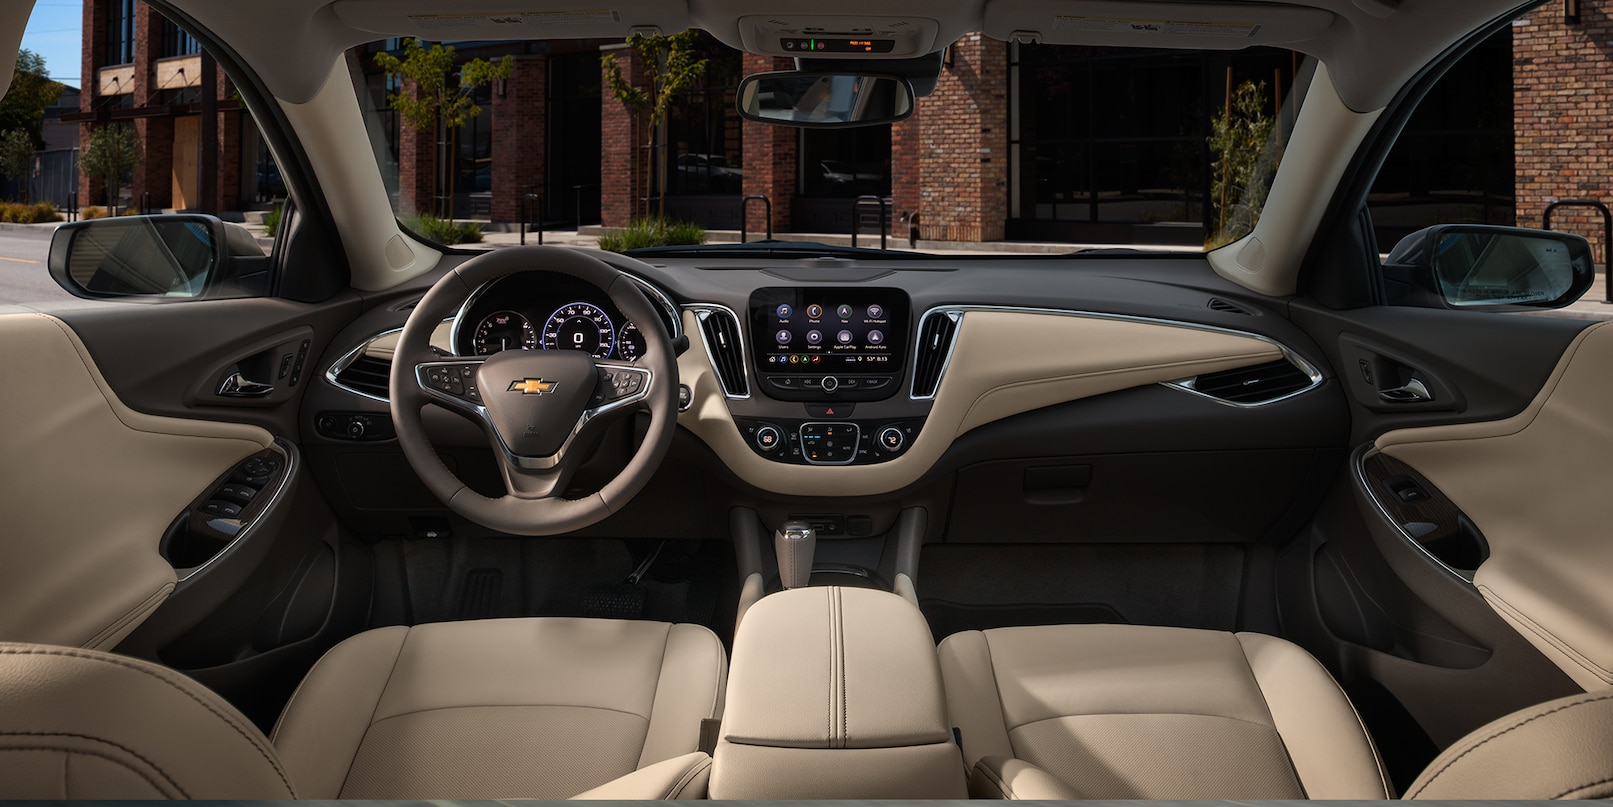 Interior of the 2019 Chevrolet Malibu